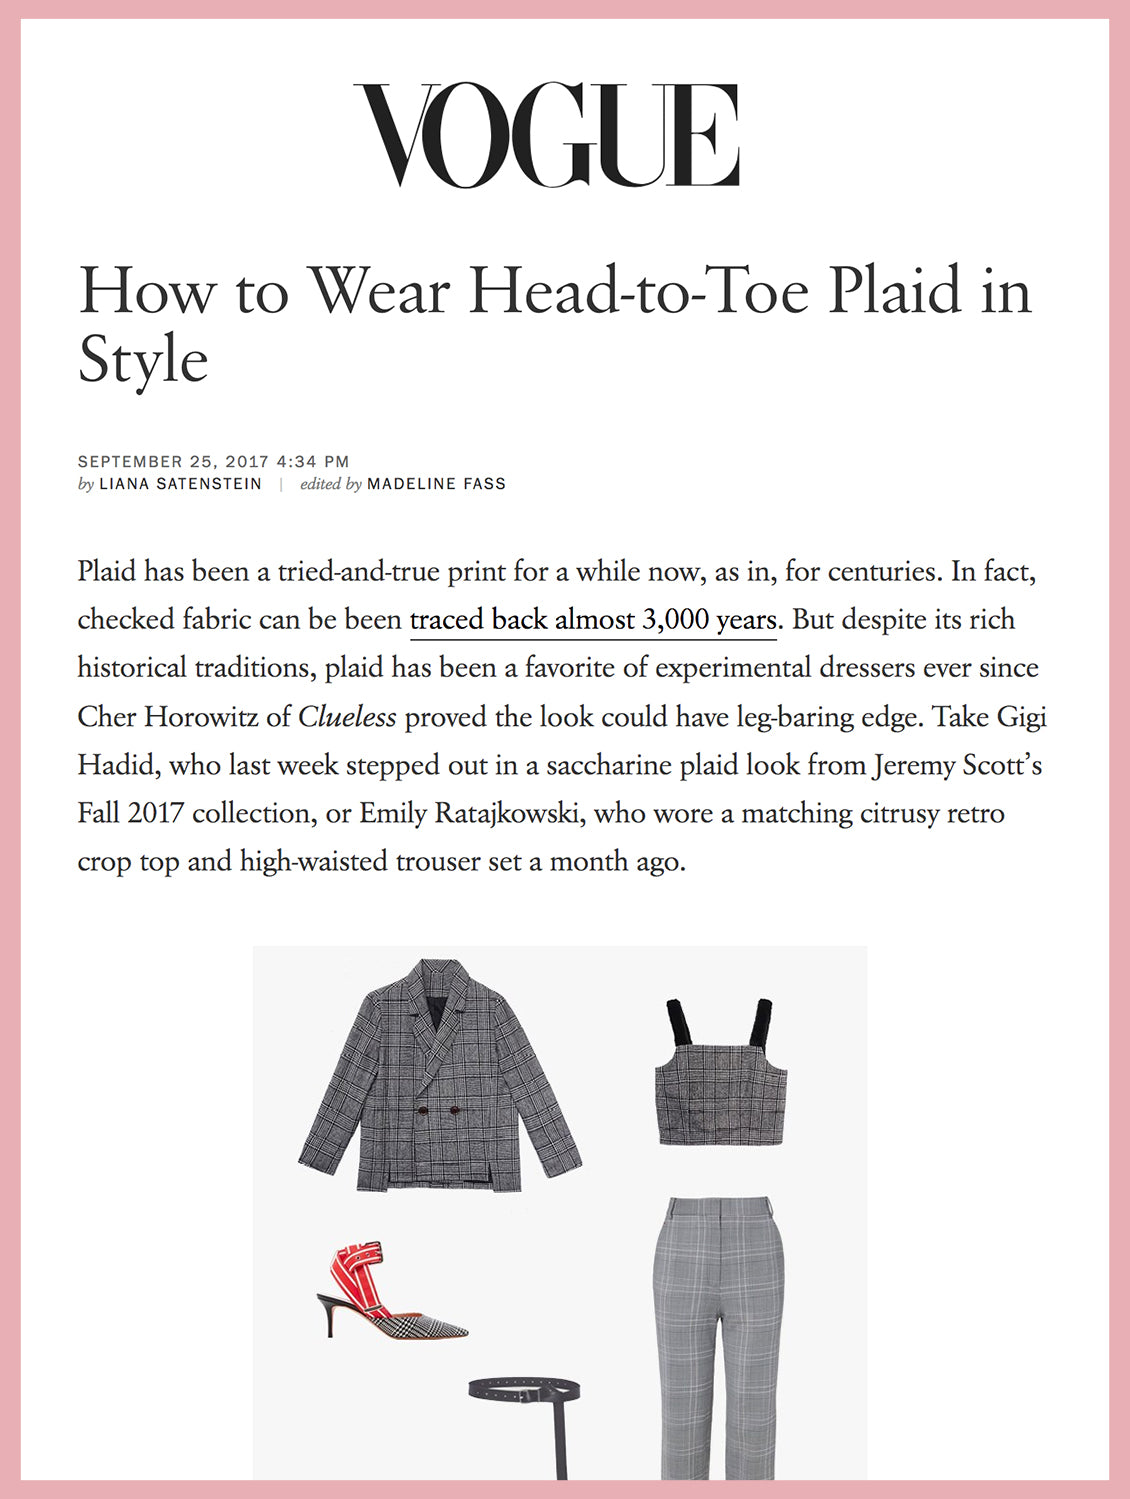 How to Wear Head-to-Toe Plaid in Style